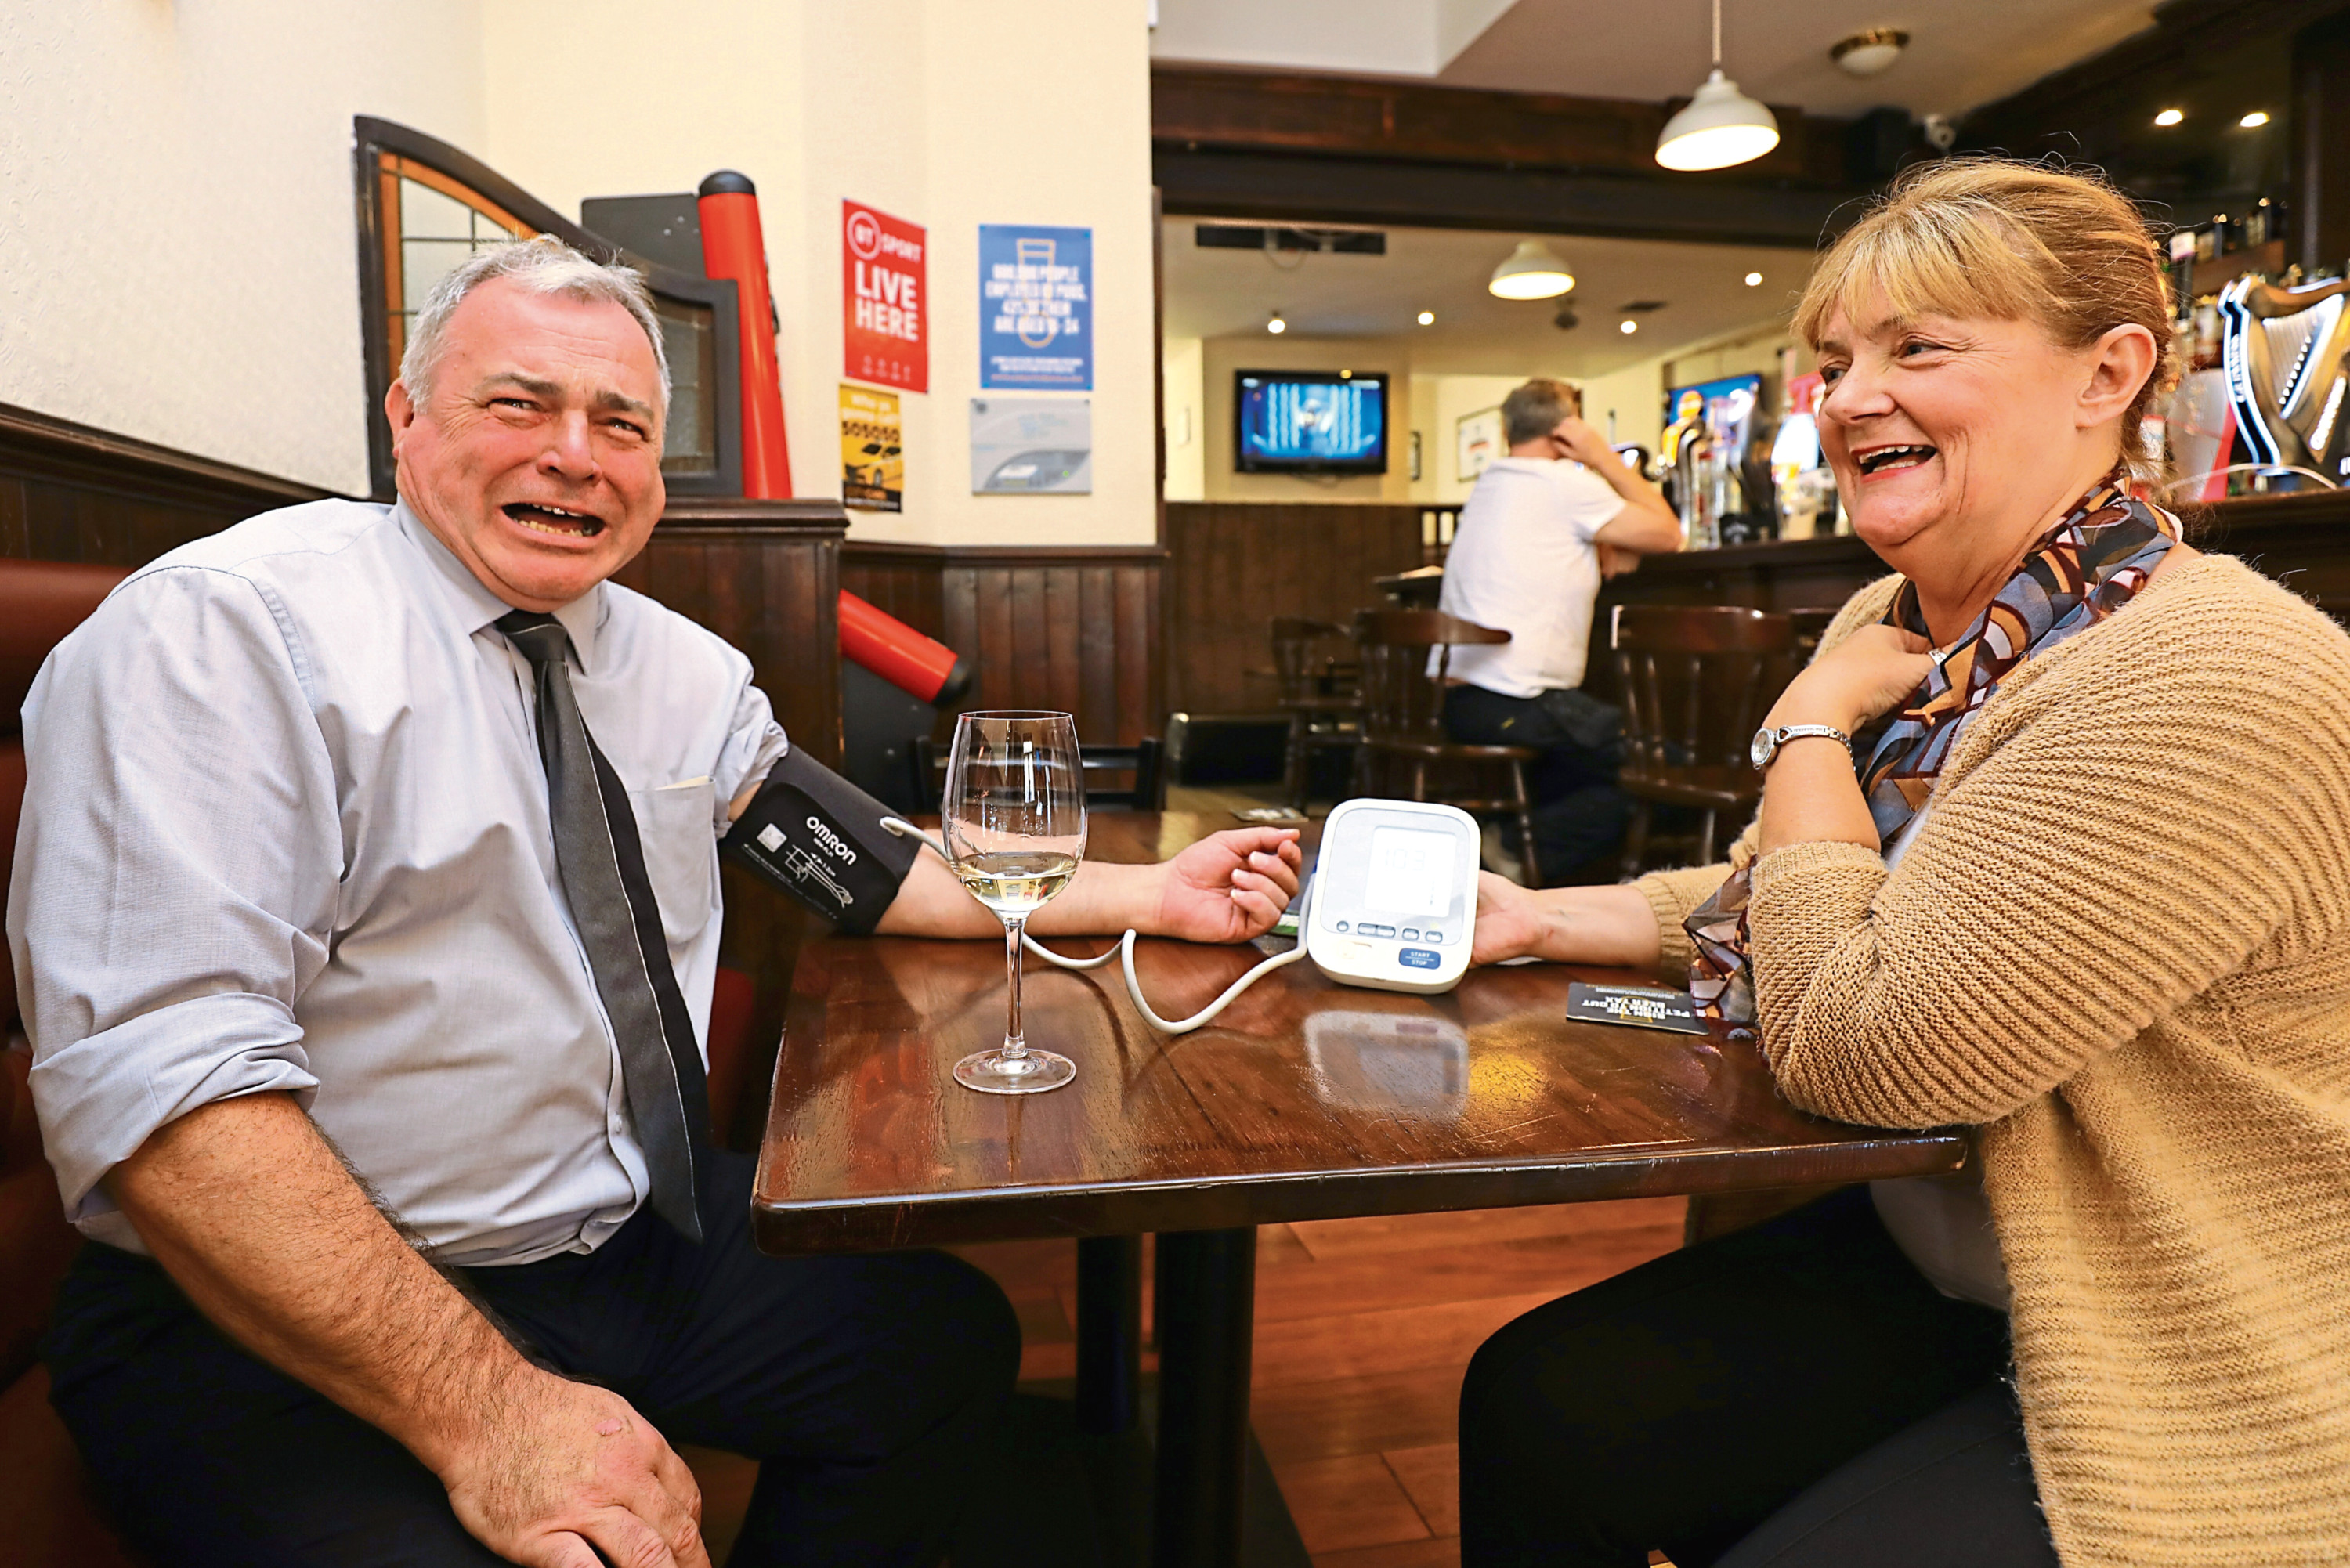 Tele reporter Kenny MacDonald, 'taking one for the team' as he gets his blood pressure checked by Karen Angus.